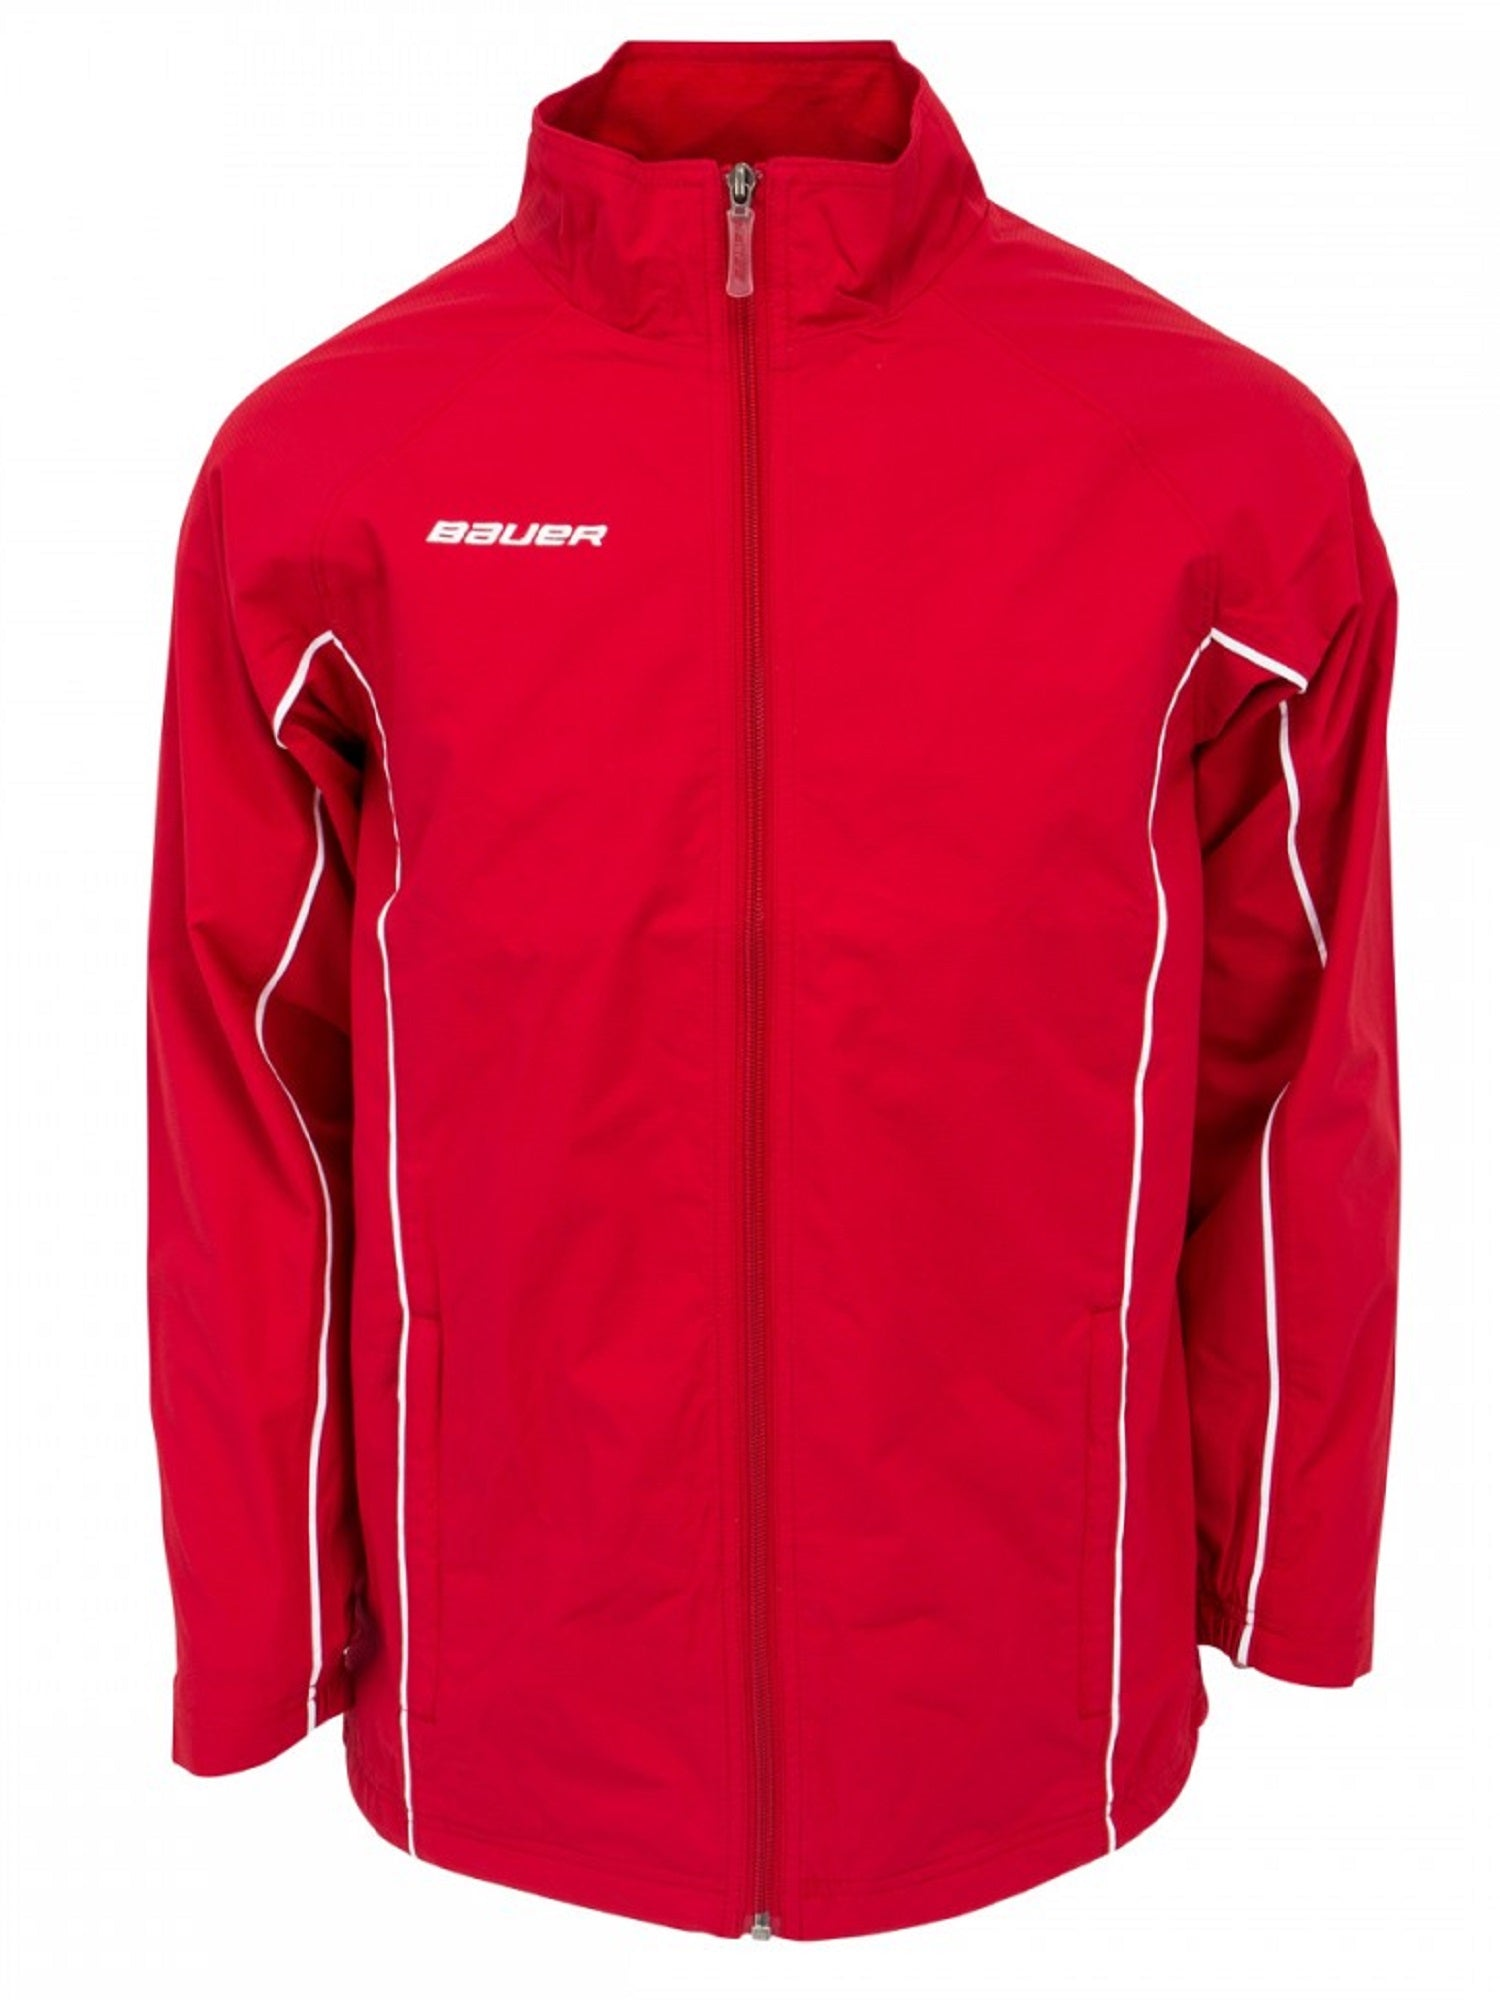 Bauer Senior Warm Up Jacket, Red X-Large